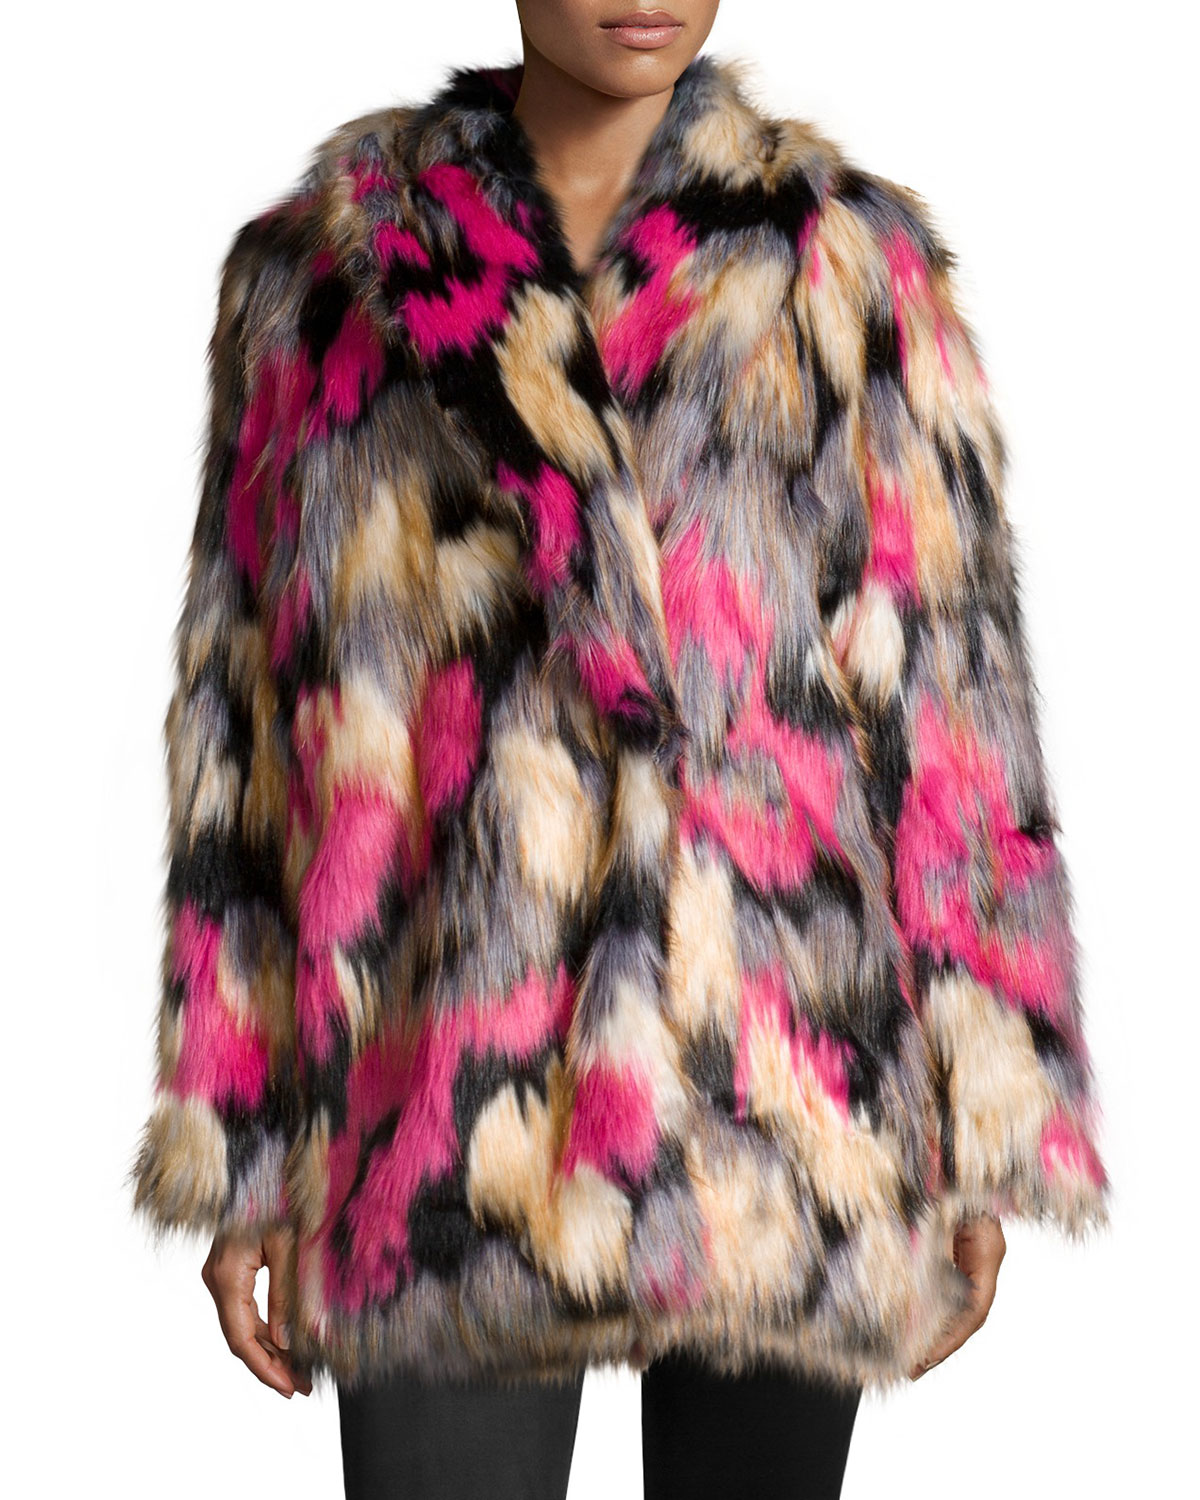 Stardust Long-Sleeve Faux-Fur Coat, Multi Colors, Size: 10 - French Connection